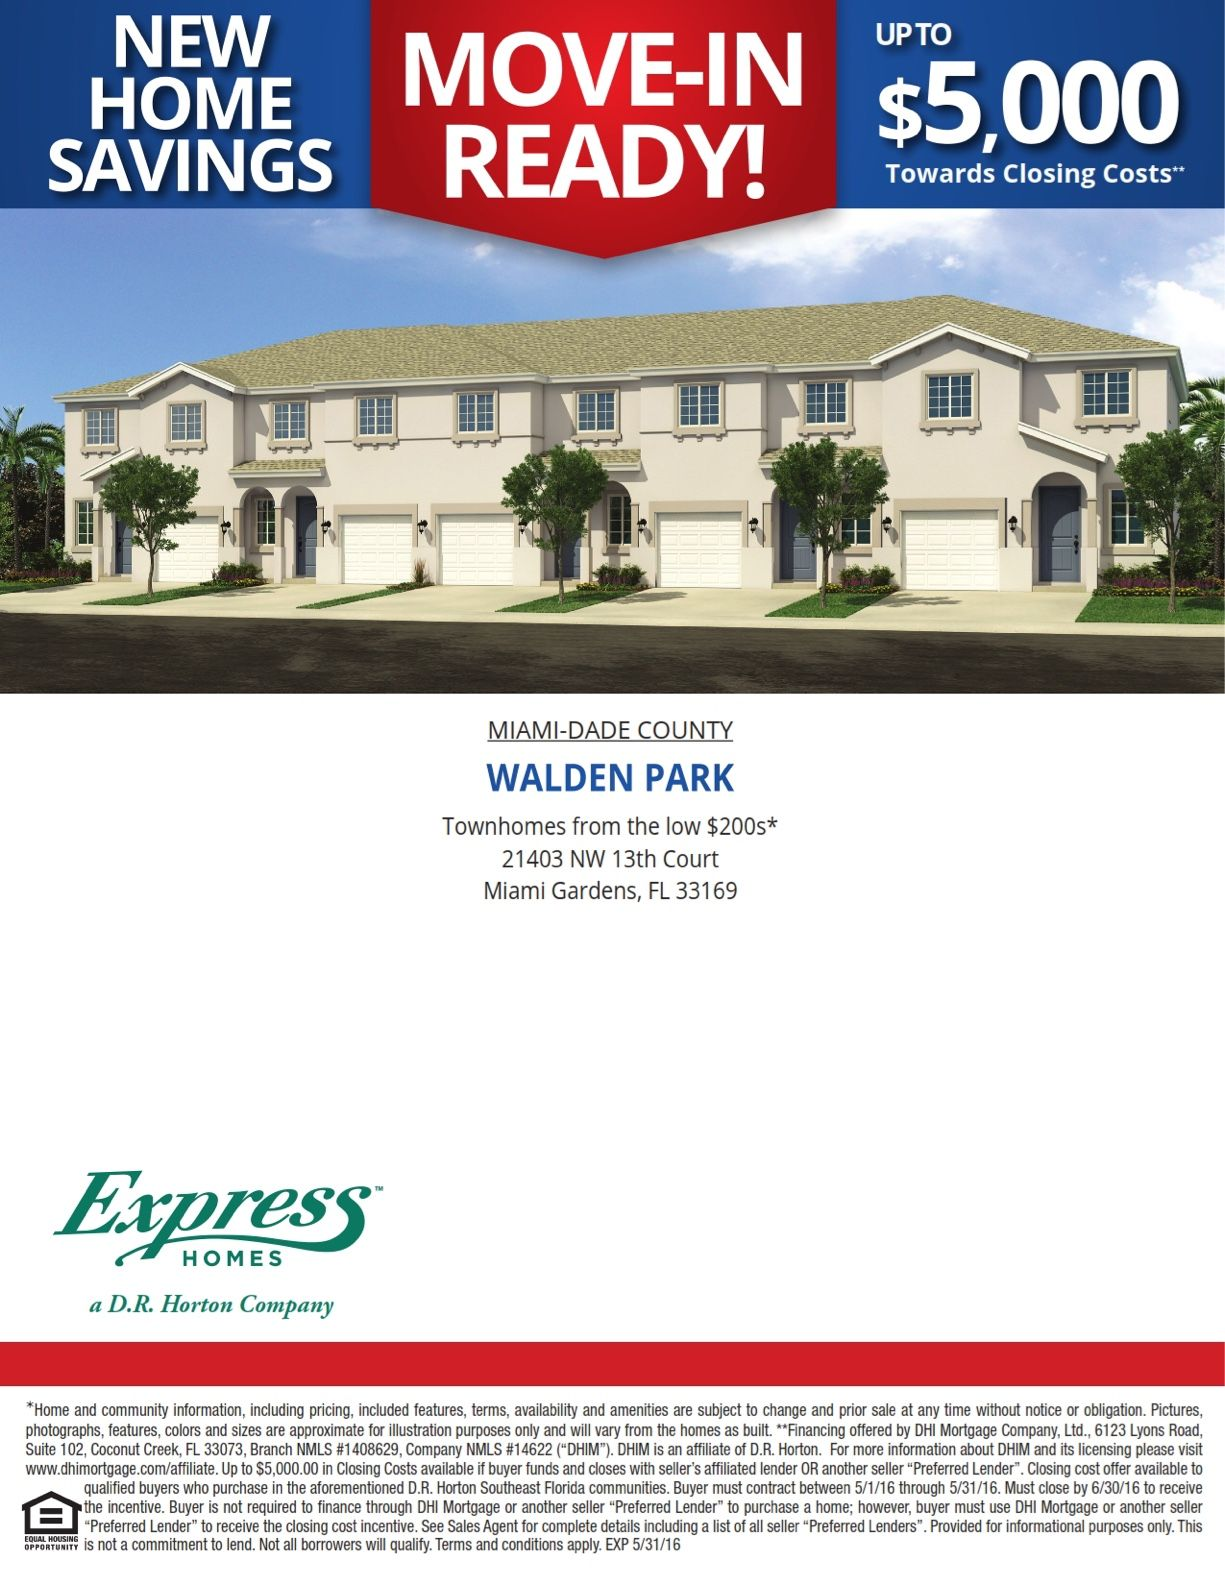 Walden Park in Miami Gardens now offering $5,000 towards closing on brand new townhomes! http://bit.ly/waldenpk